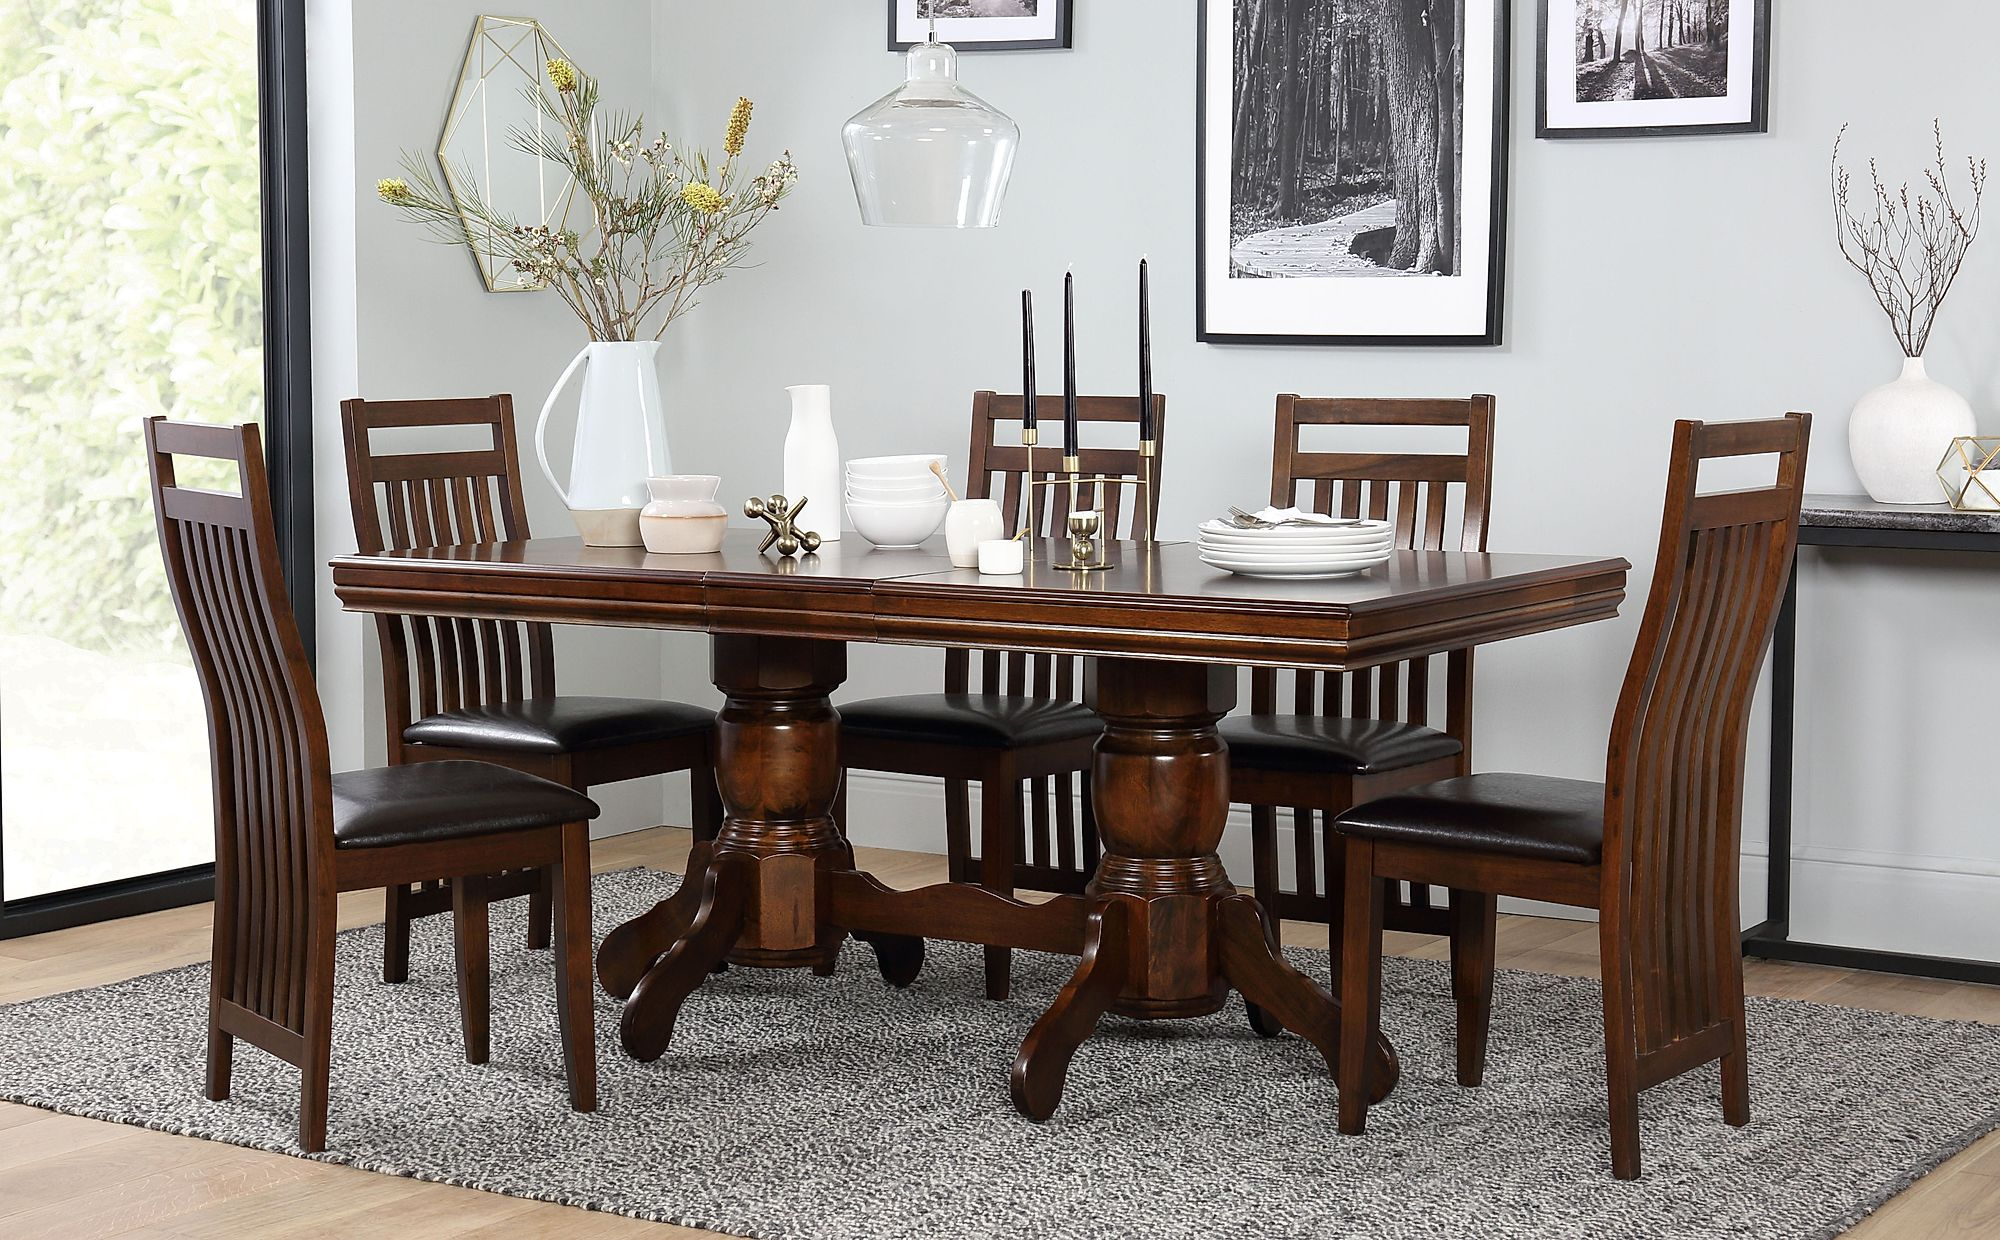 fe3961019 Chatsworth Extending Dark Wood Dining Table and 6 Java Chairs Set ...